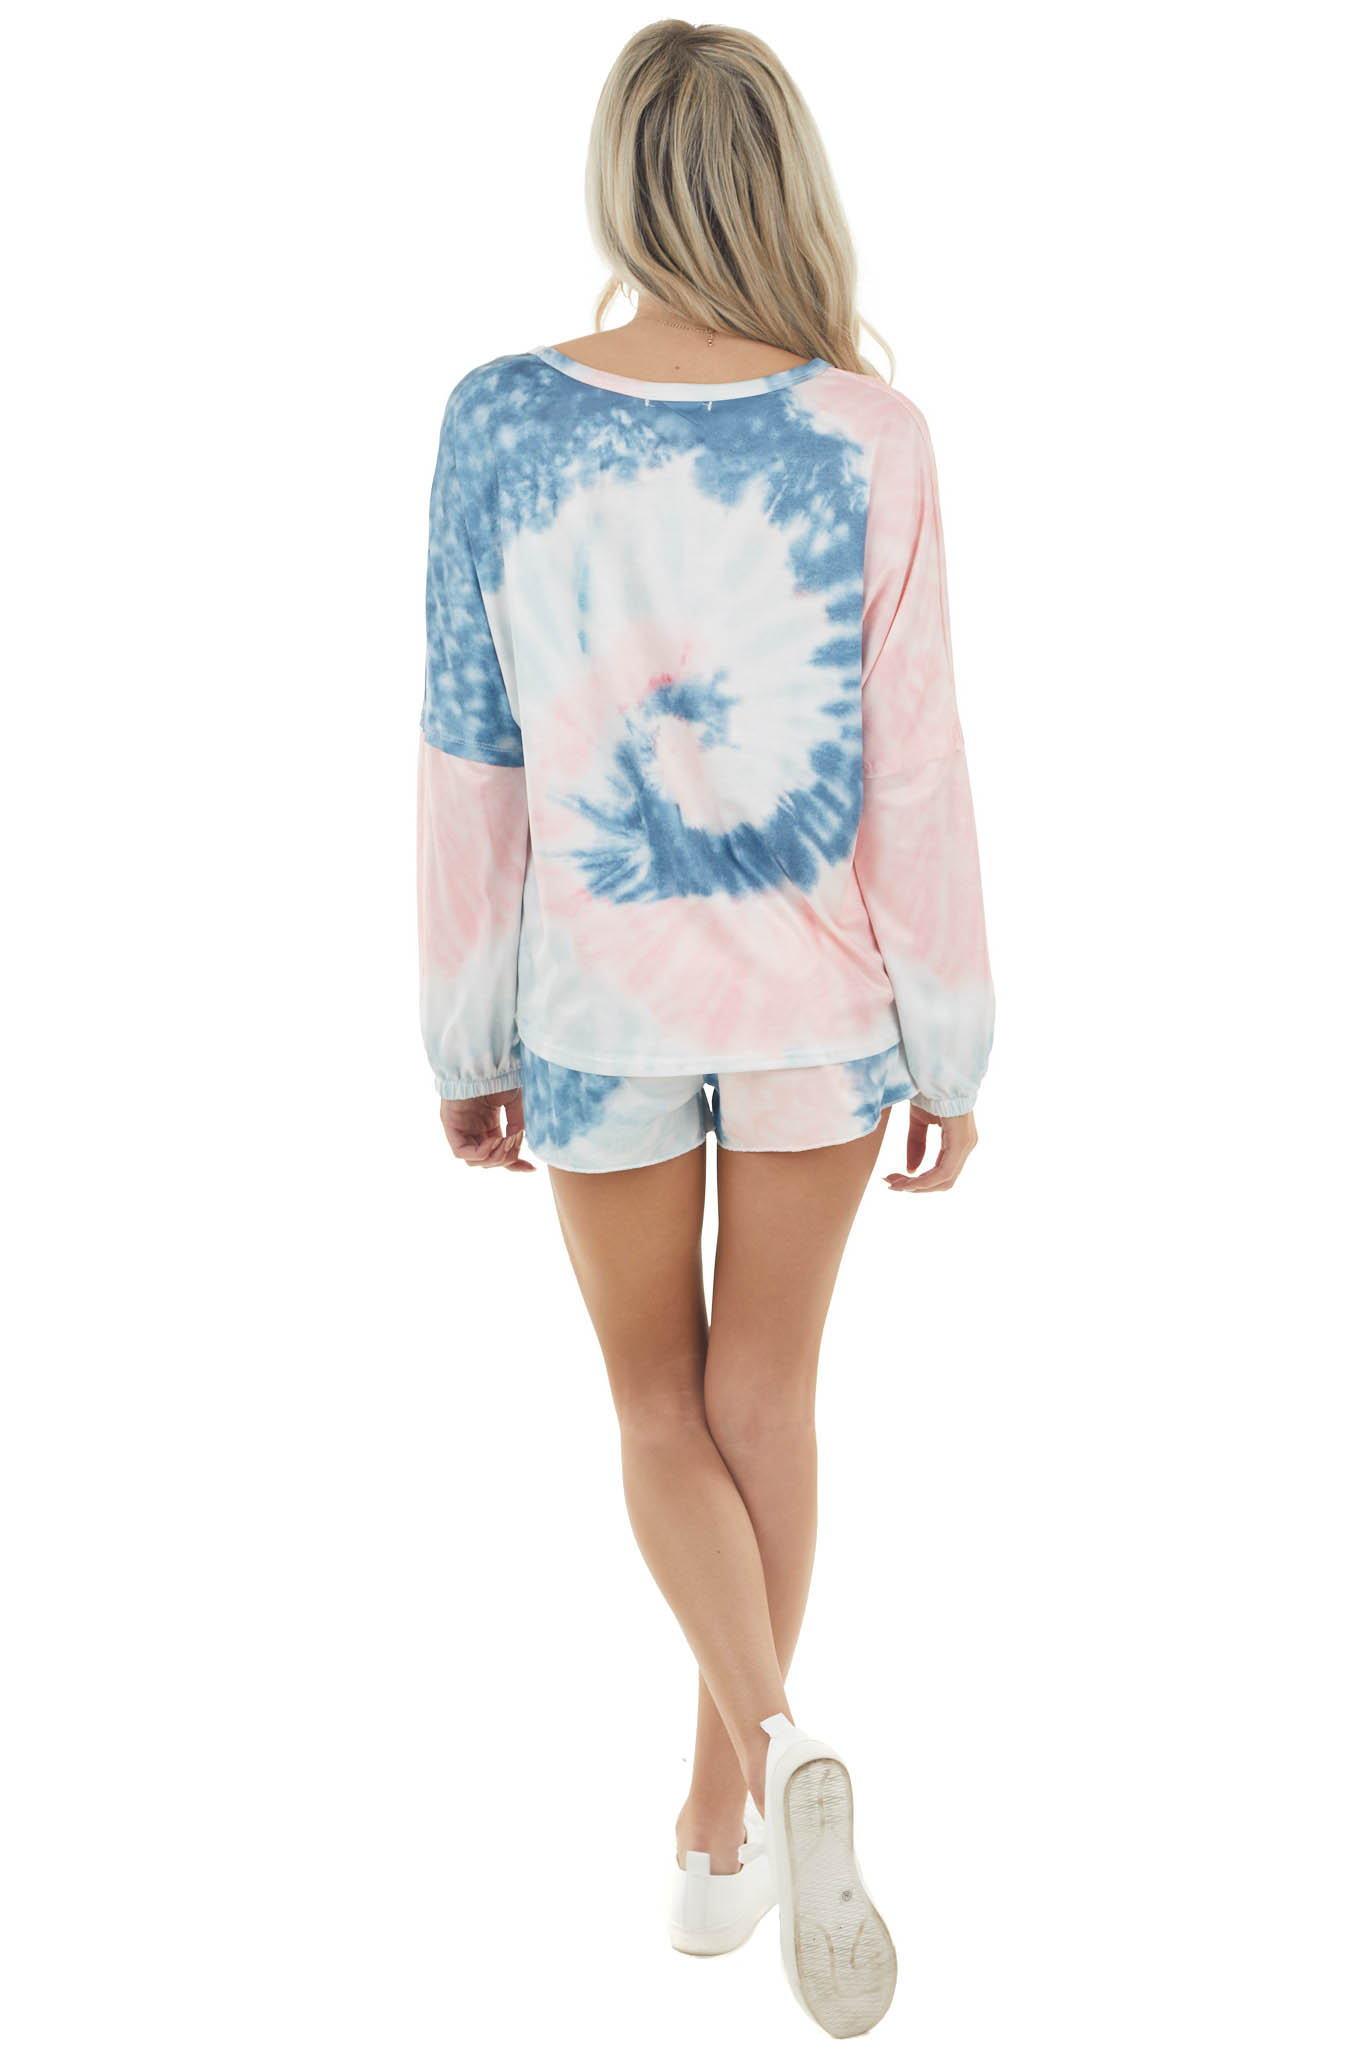 Ocean Blue and Carnation Tie Dye Top and Shorts Set